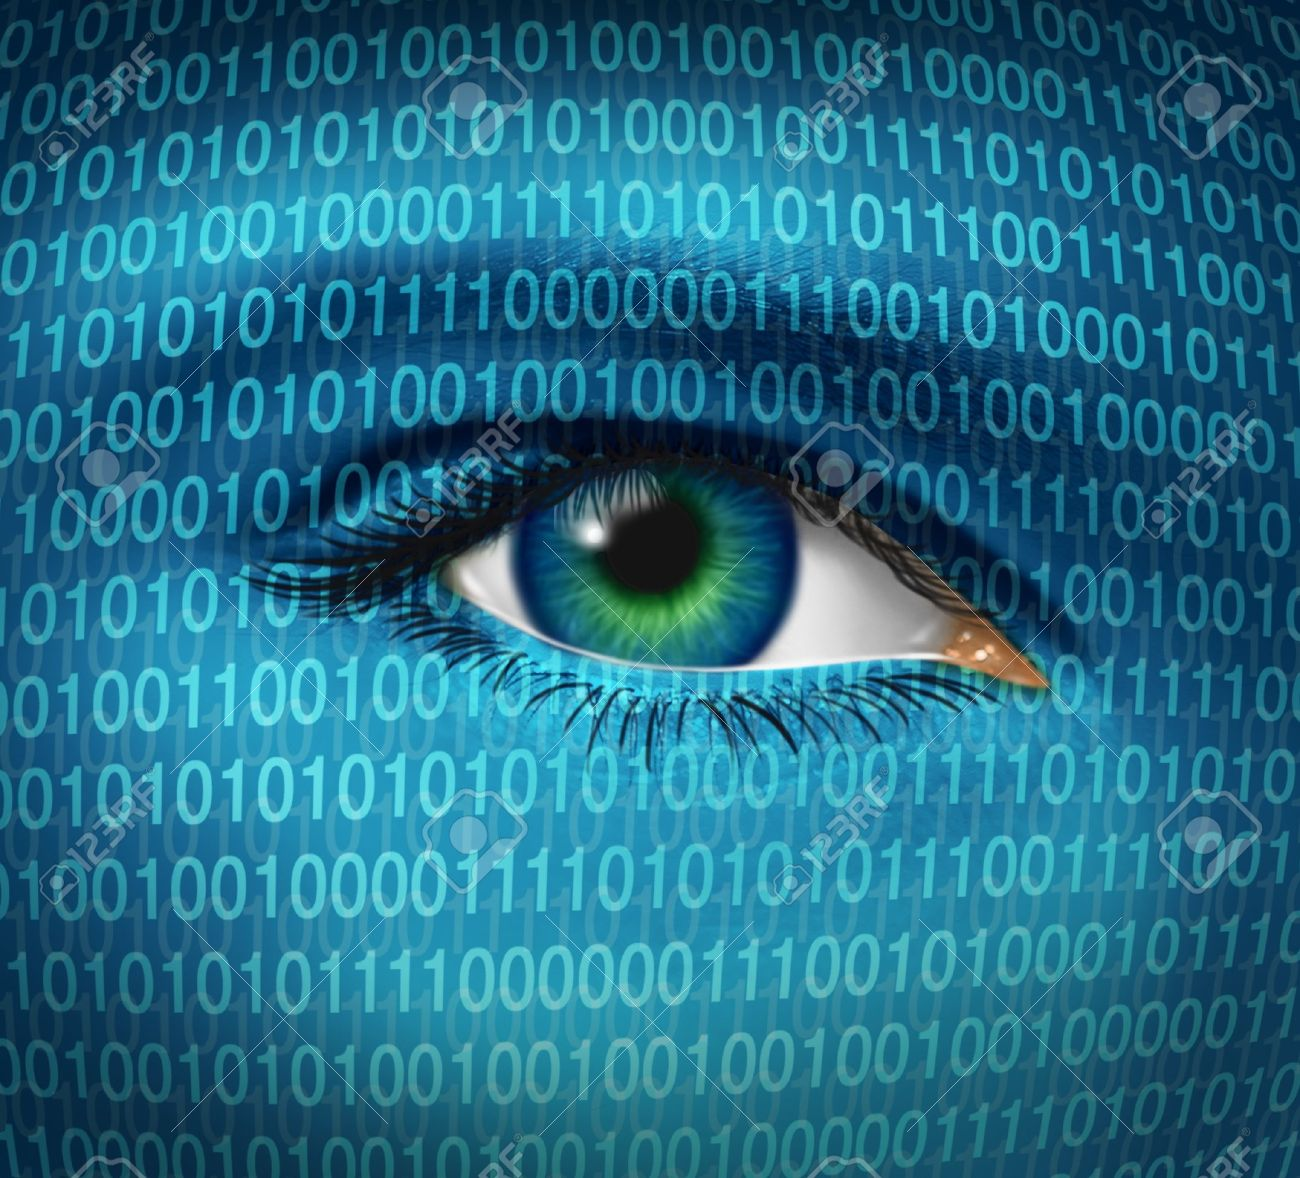 Internet security and privacy issues with a human eye and digital binary code representing surveillance of hackers or hacking from cyber criminals  watching prohibited access to web sites with firewalls. Stock Photo - 12353882